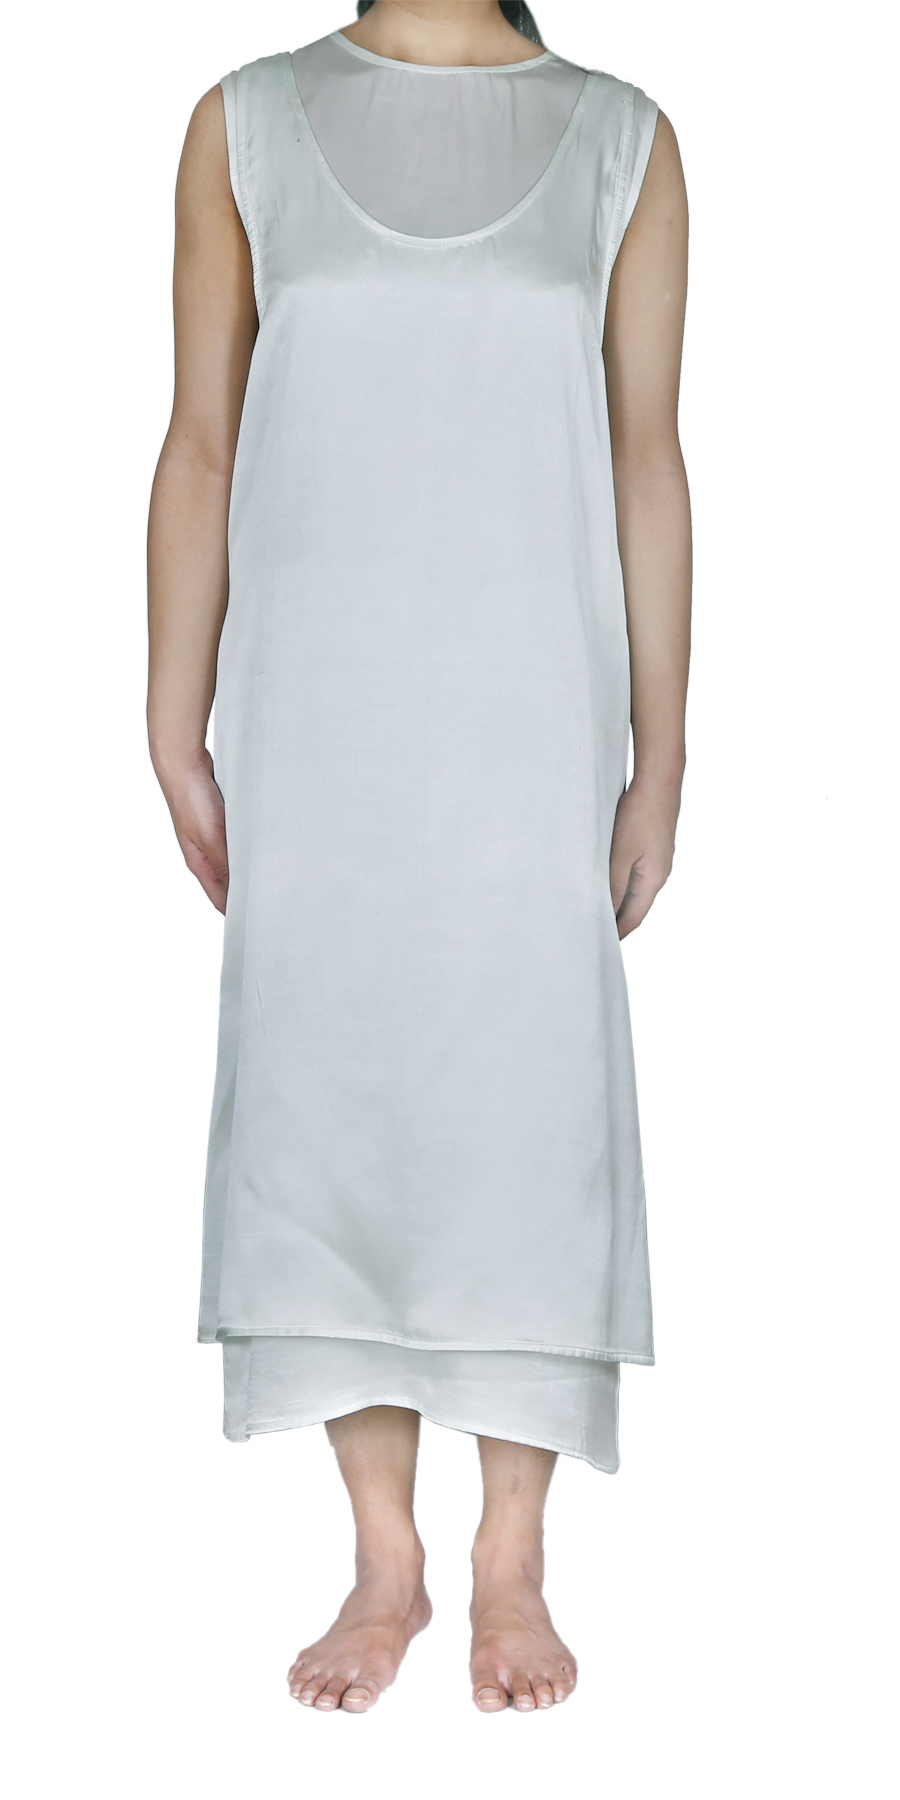 HINTY MINT SLIP DRESS